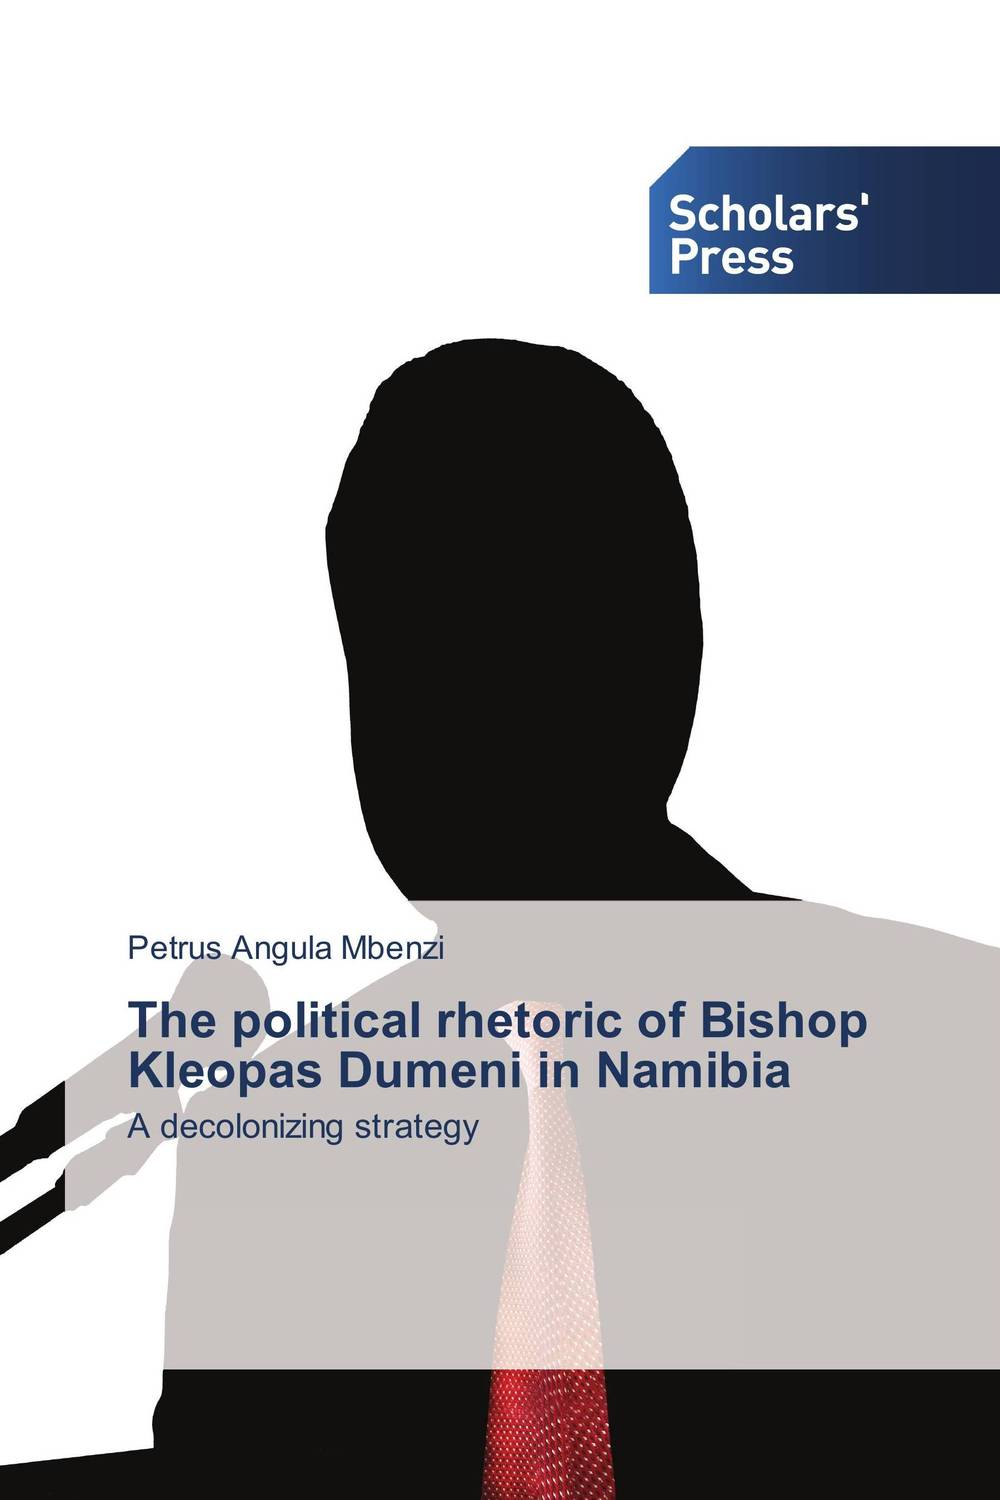 The political rhetoric of Bishop Kleopas Dumeni in Namibia a study of the religio political thought of abdurrahman wahid